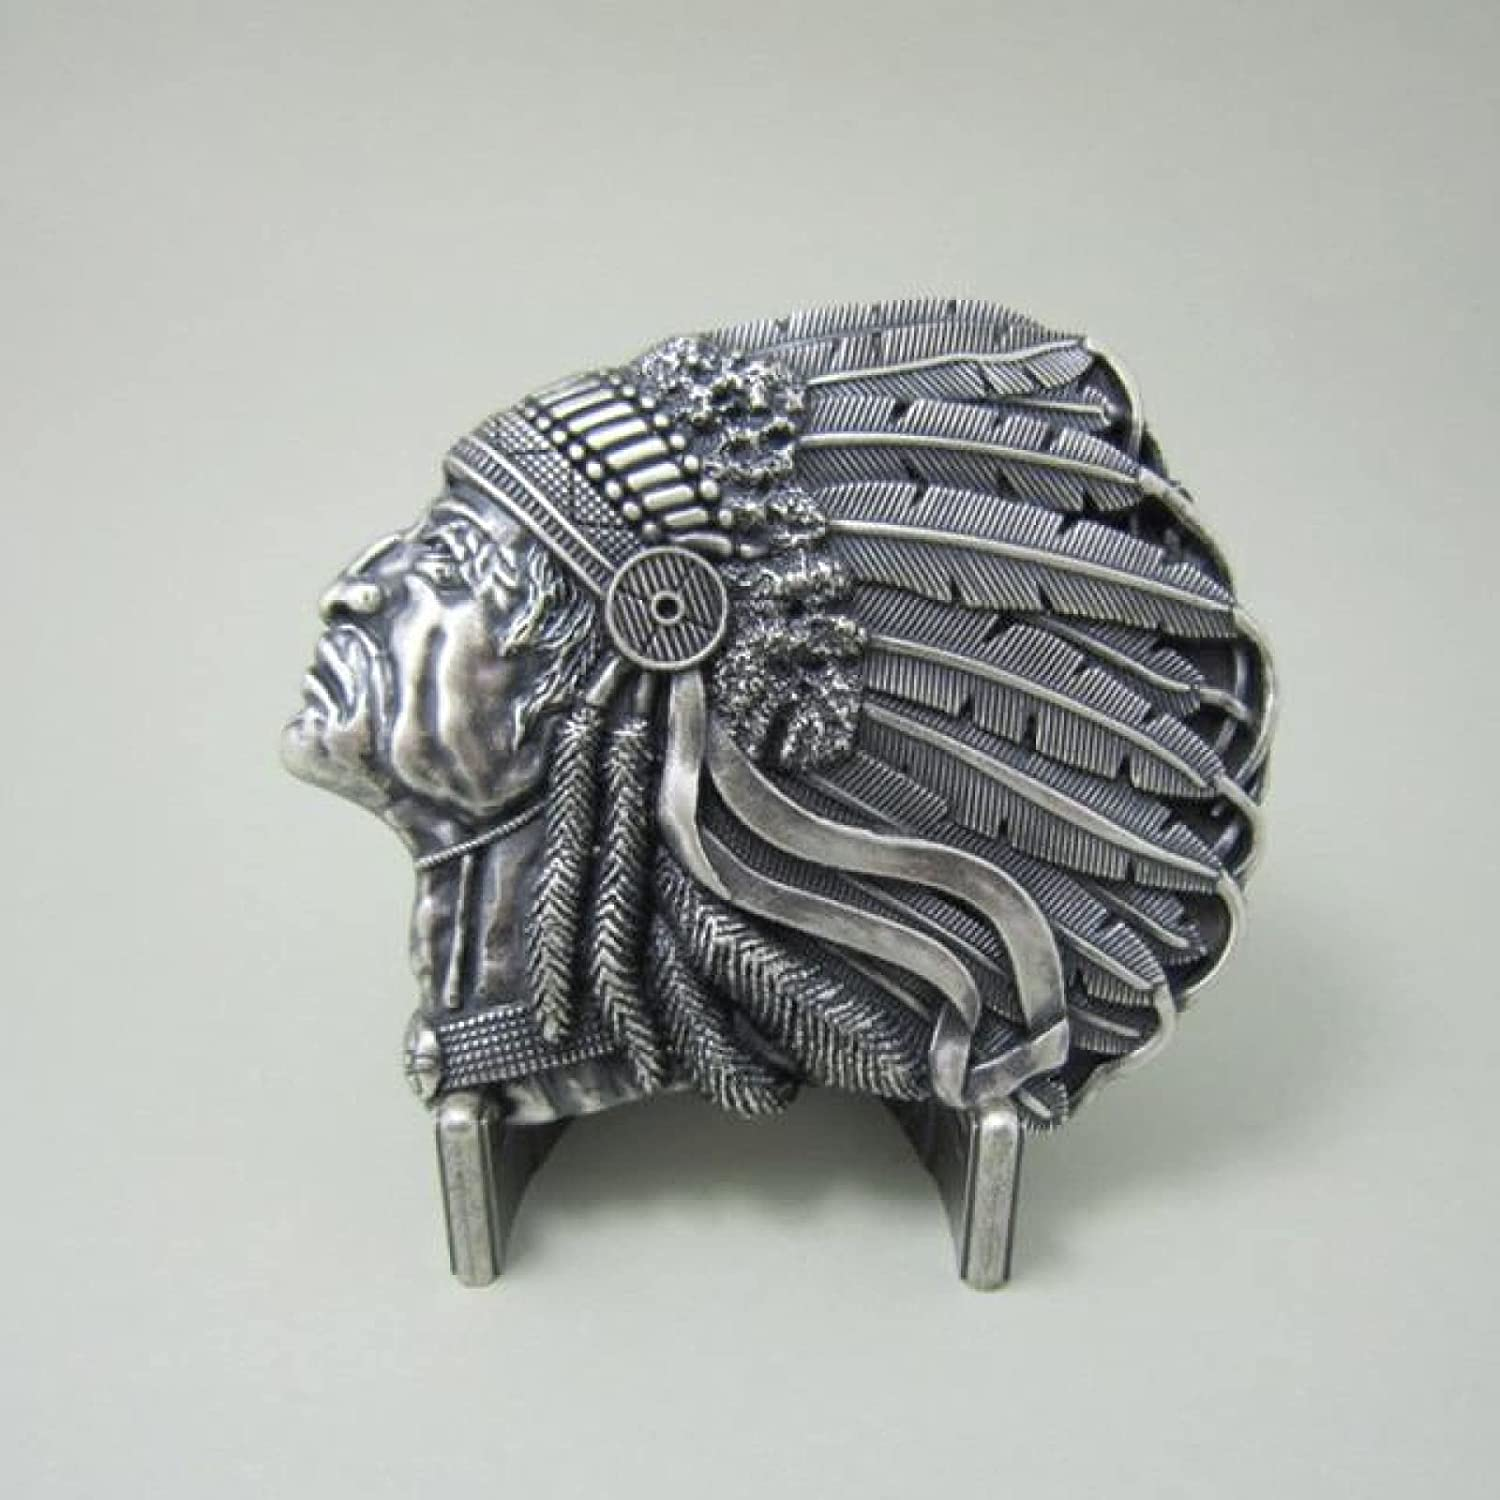 Omaha Mall Vintage Chief Free Shipping New Feather Belt Womens BUCKLE-WT073 Buckle